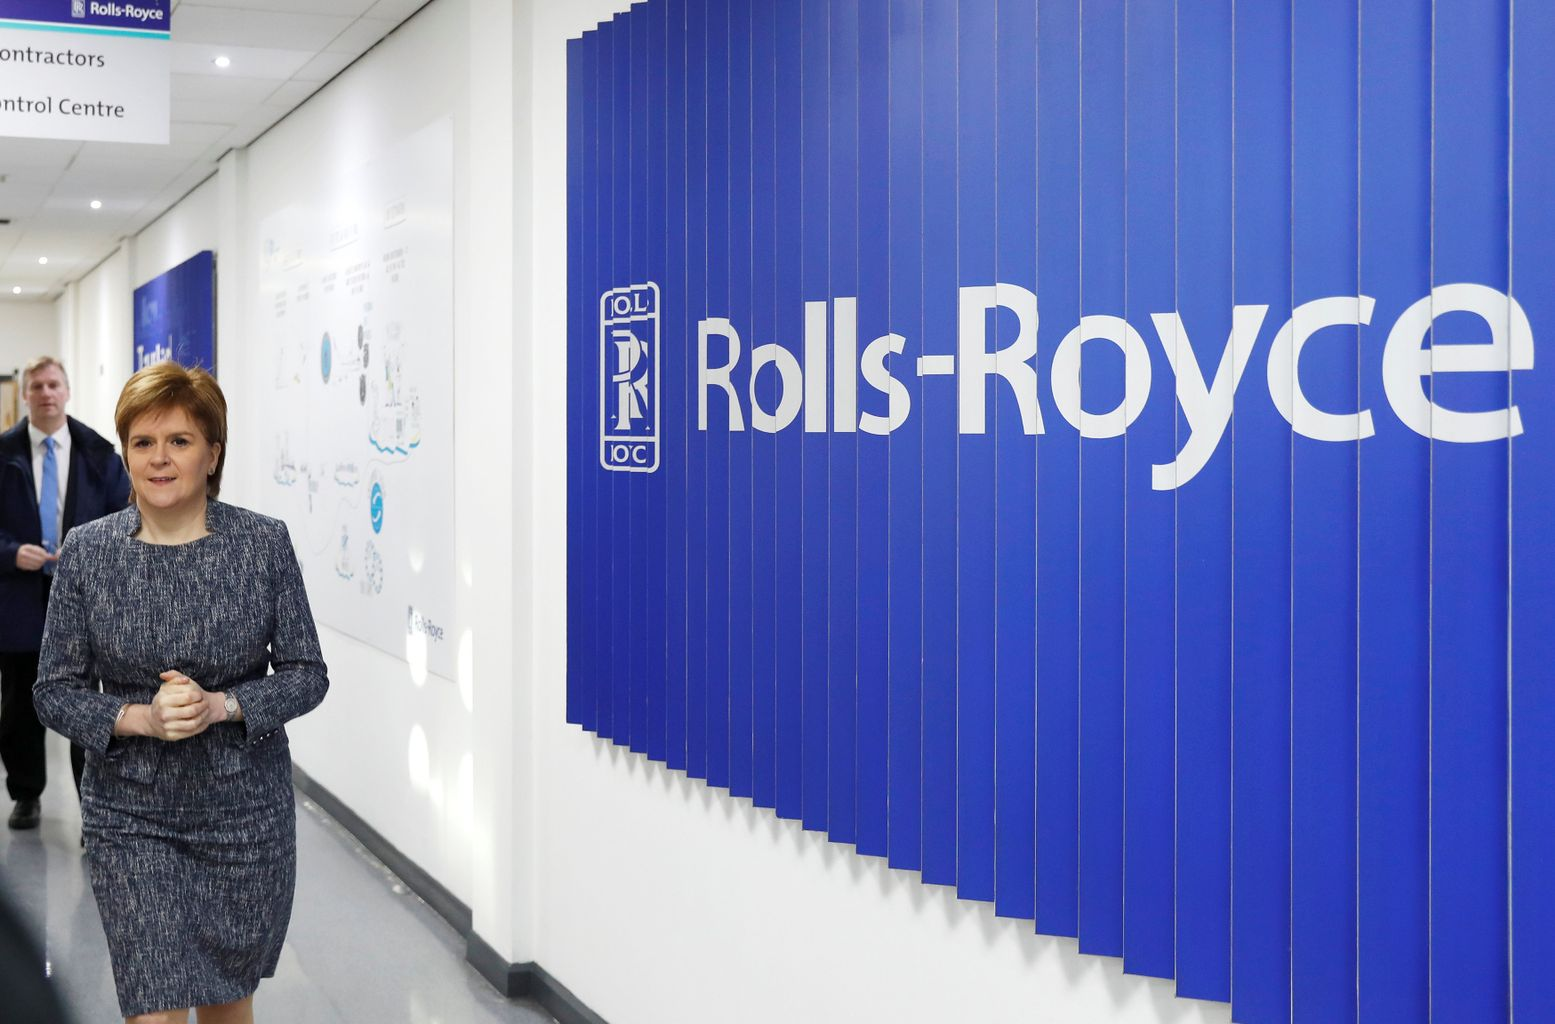 Rolls Royce confirms 700 jobs are to be axed at Inchinnan site